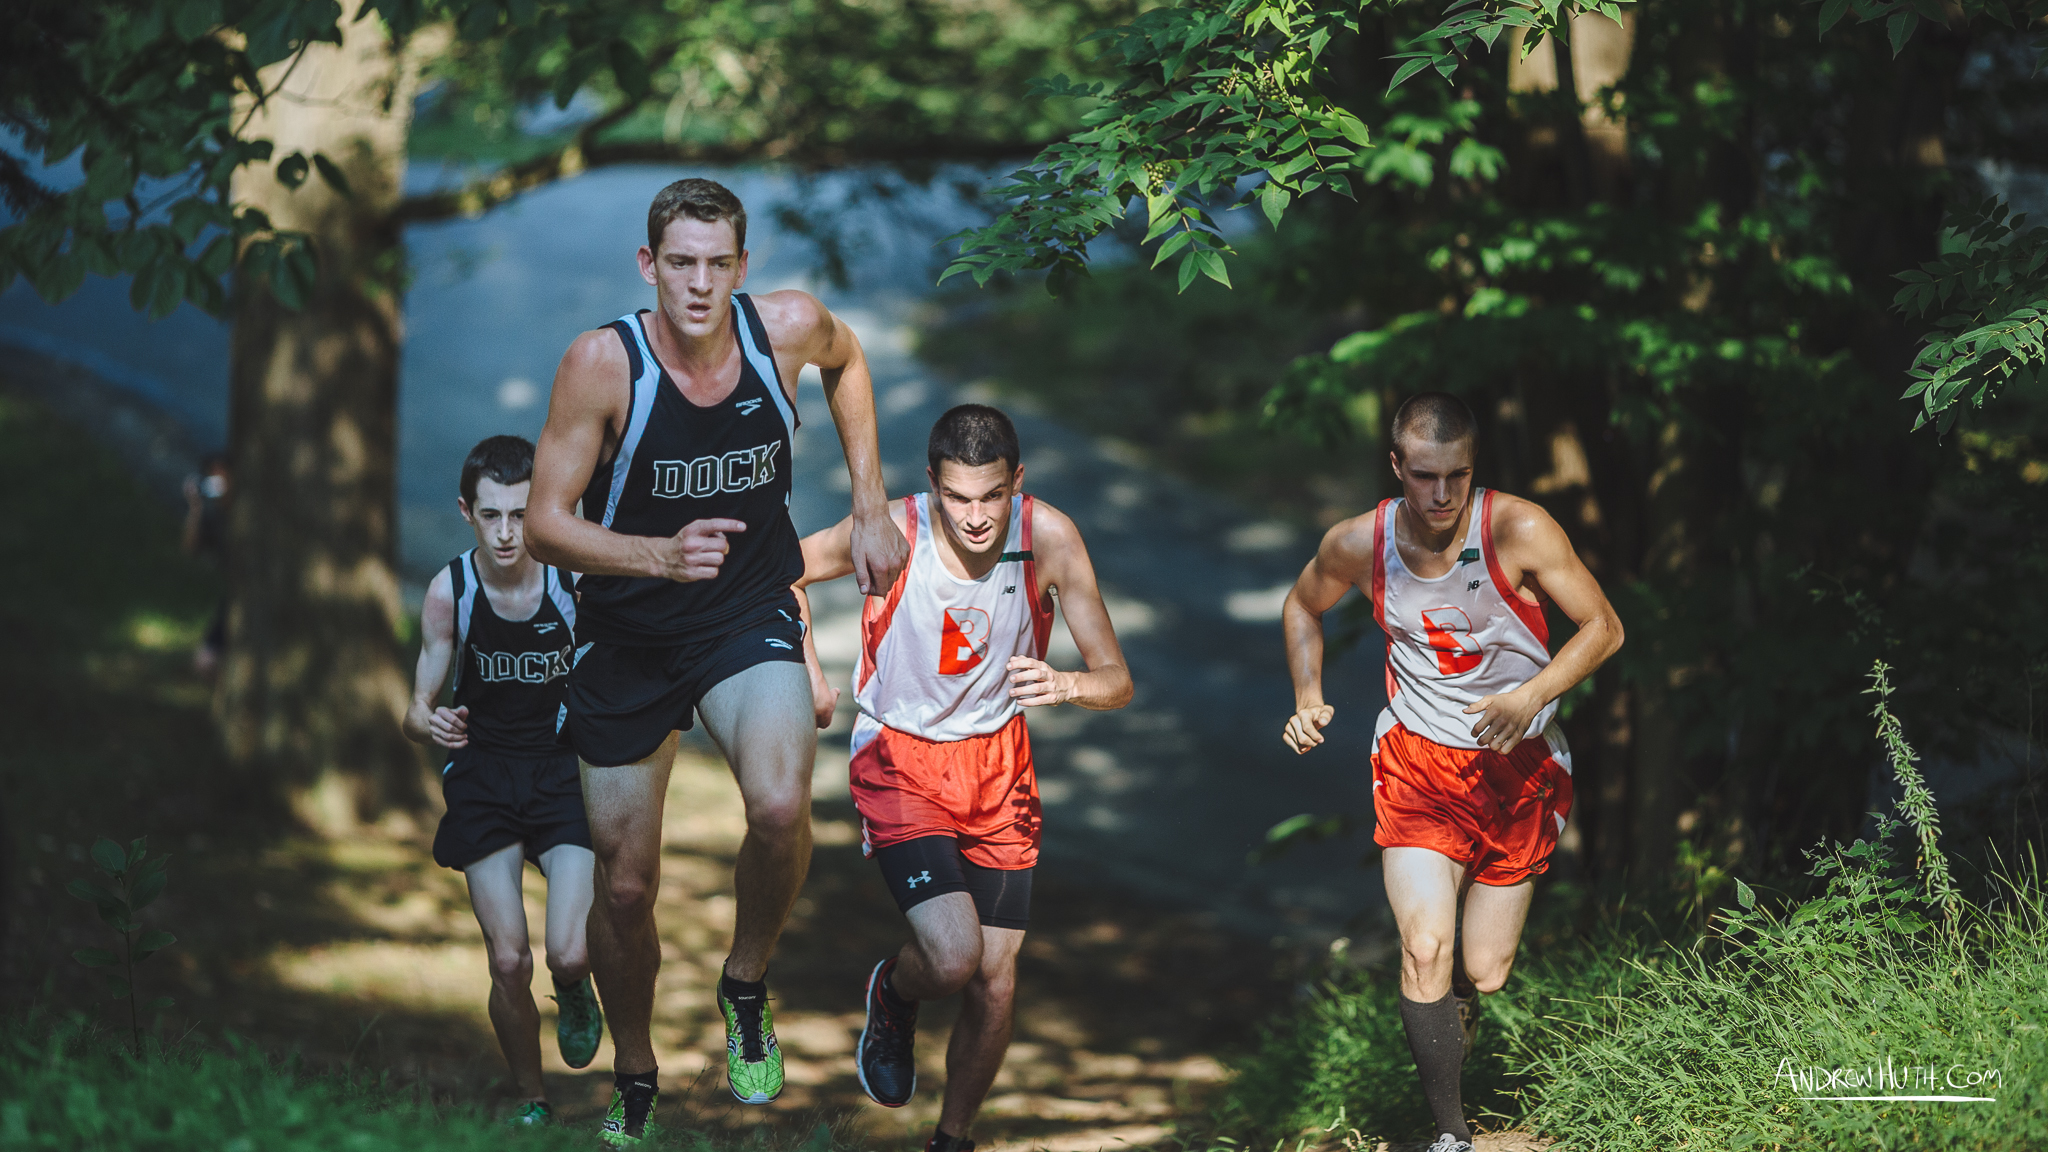 andrew_huth_cd_xcountry_jank_009.jpg